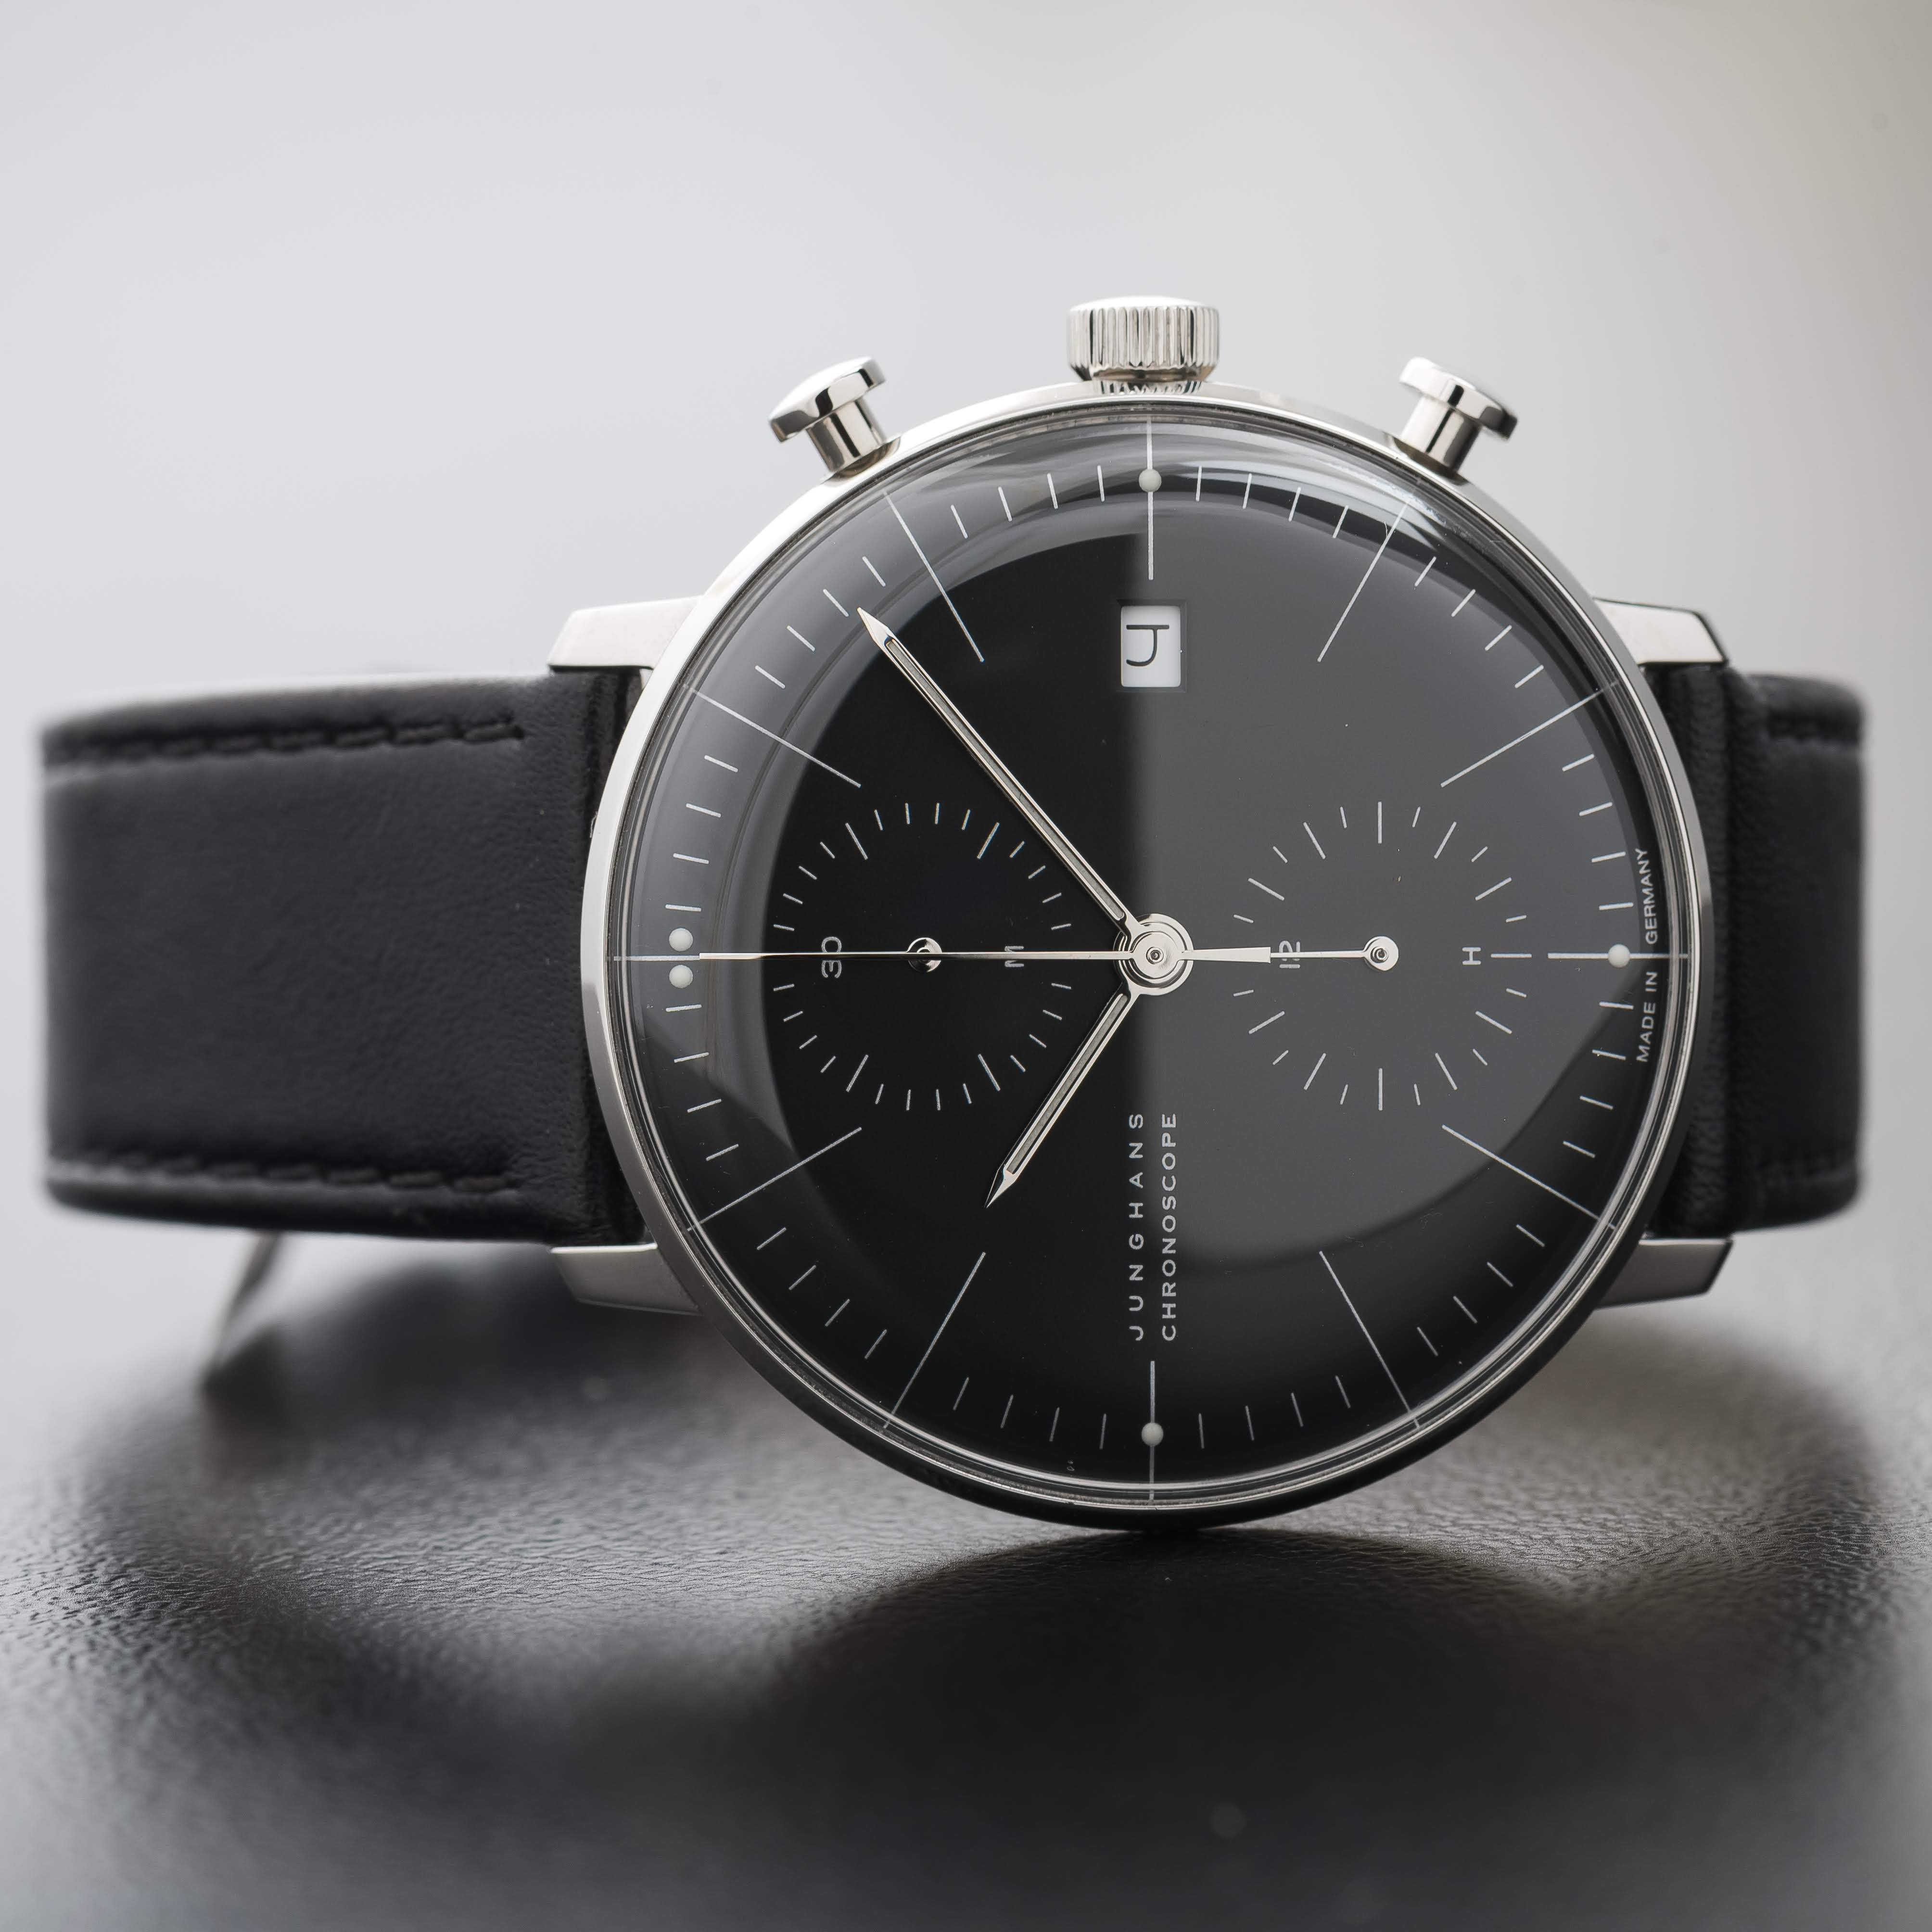 Max Bill Automatic Junghans Max Bill Chronoscope Automatic Chronograph Date Black Watch 027 4601 00